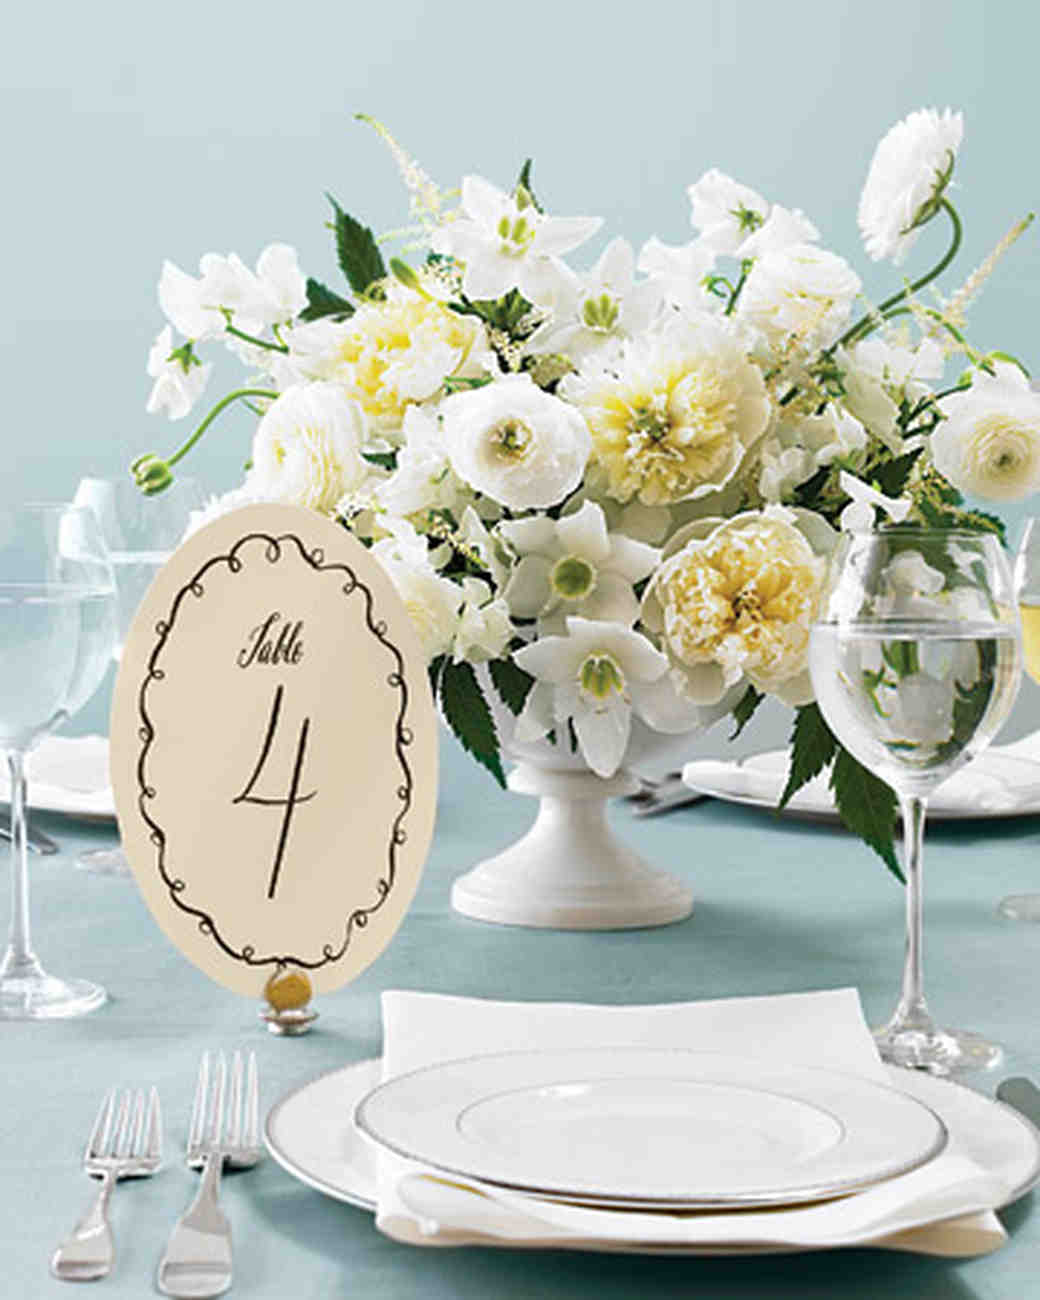 graphic regarding Printable Wedding Table Numbers identified as Printable Marriage ceremony Desk Variety Templates Martha Stewart